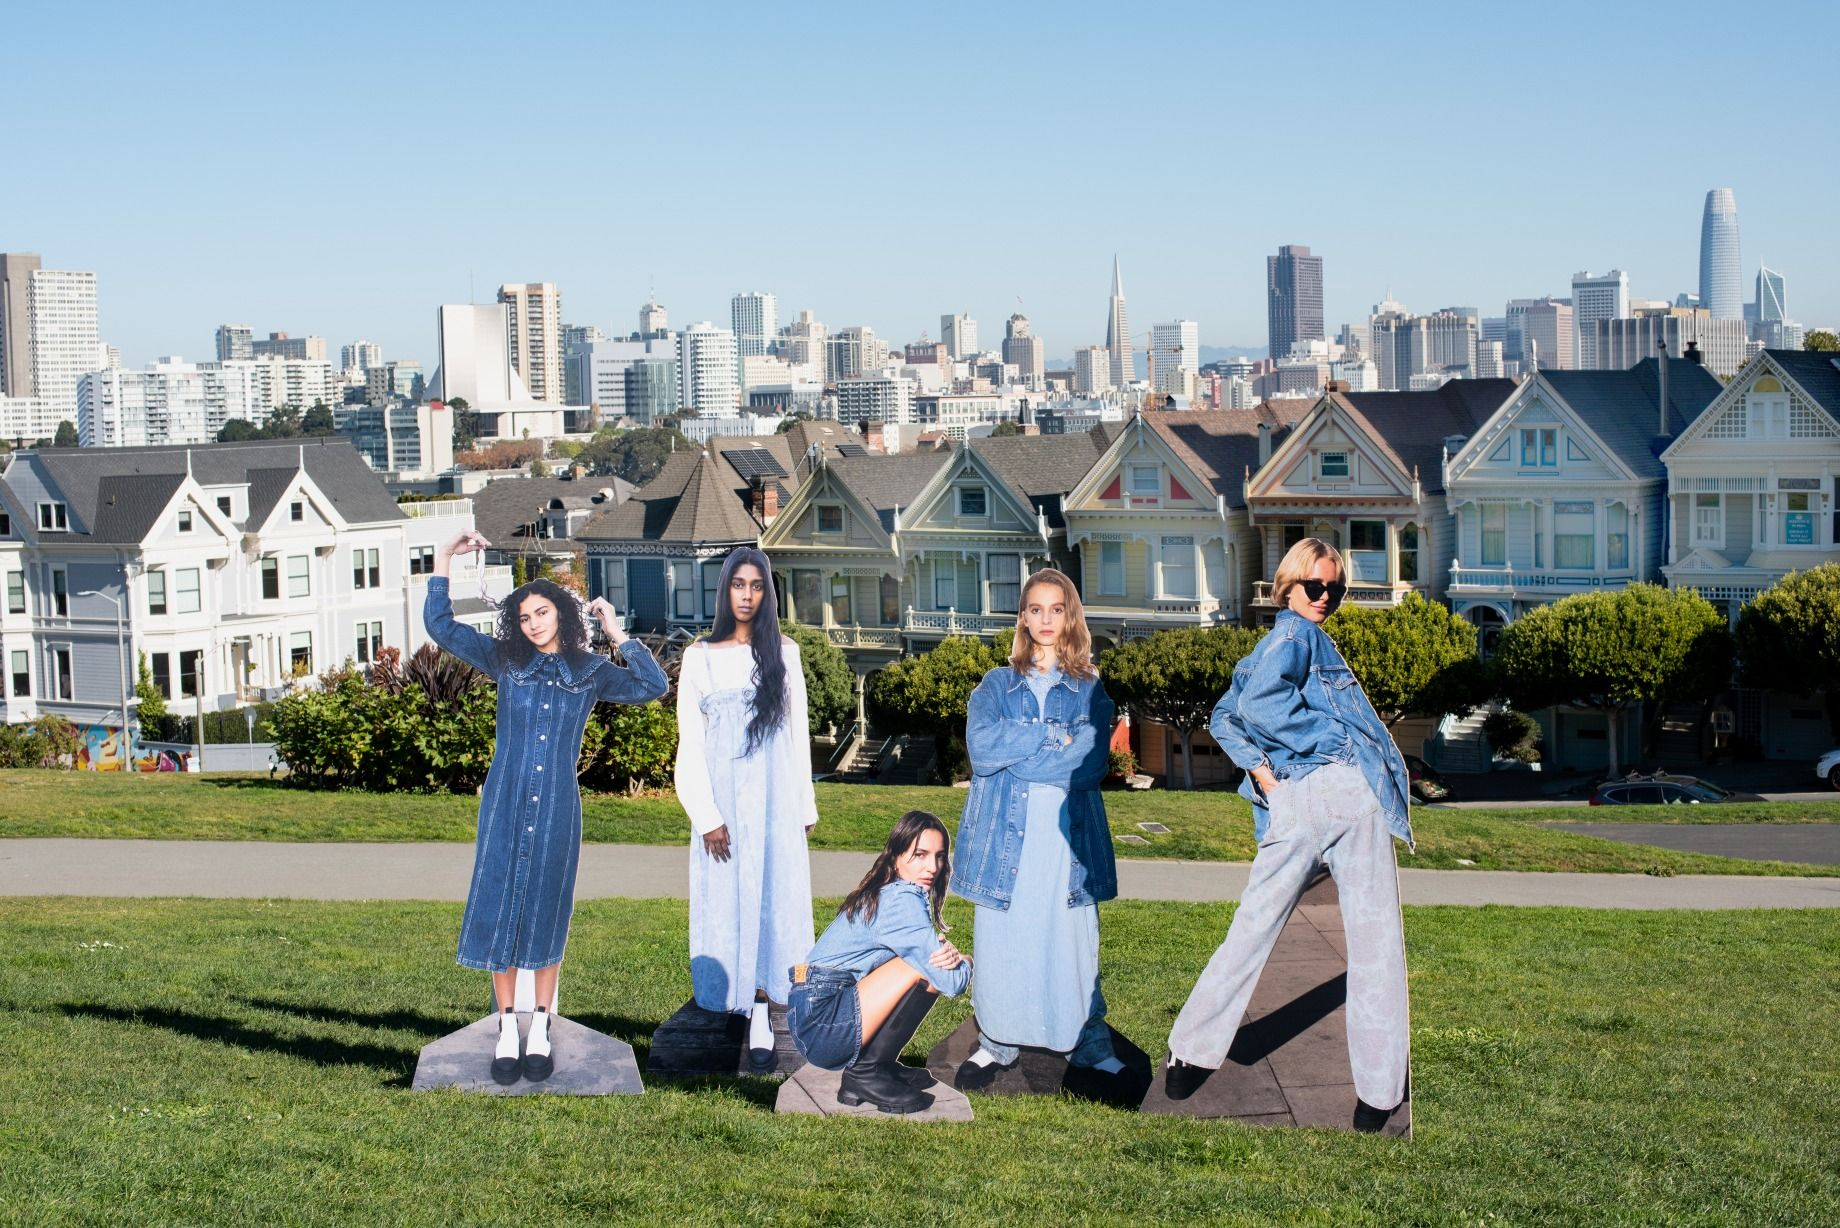 Levi's x Ganni Collaboration Is Back With A Sustainable Denim Collection